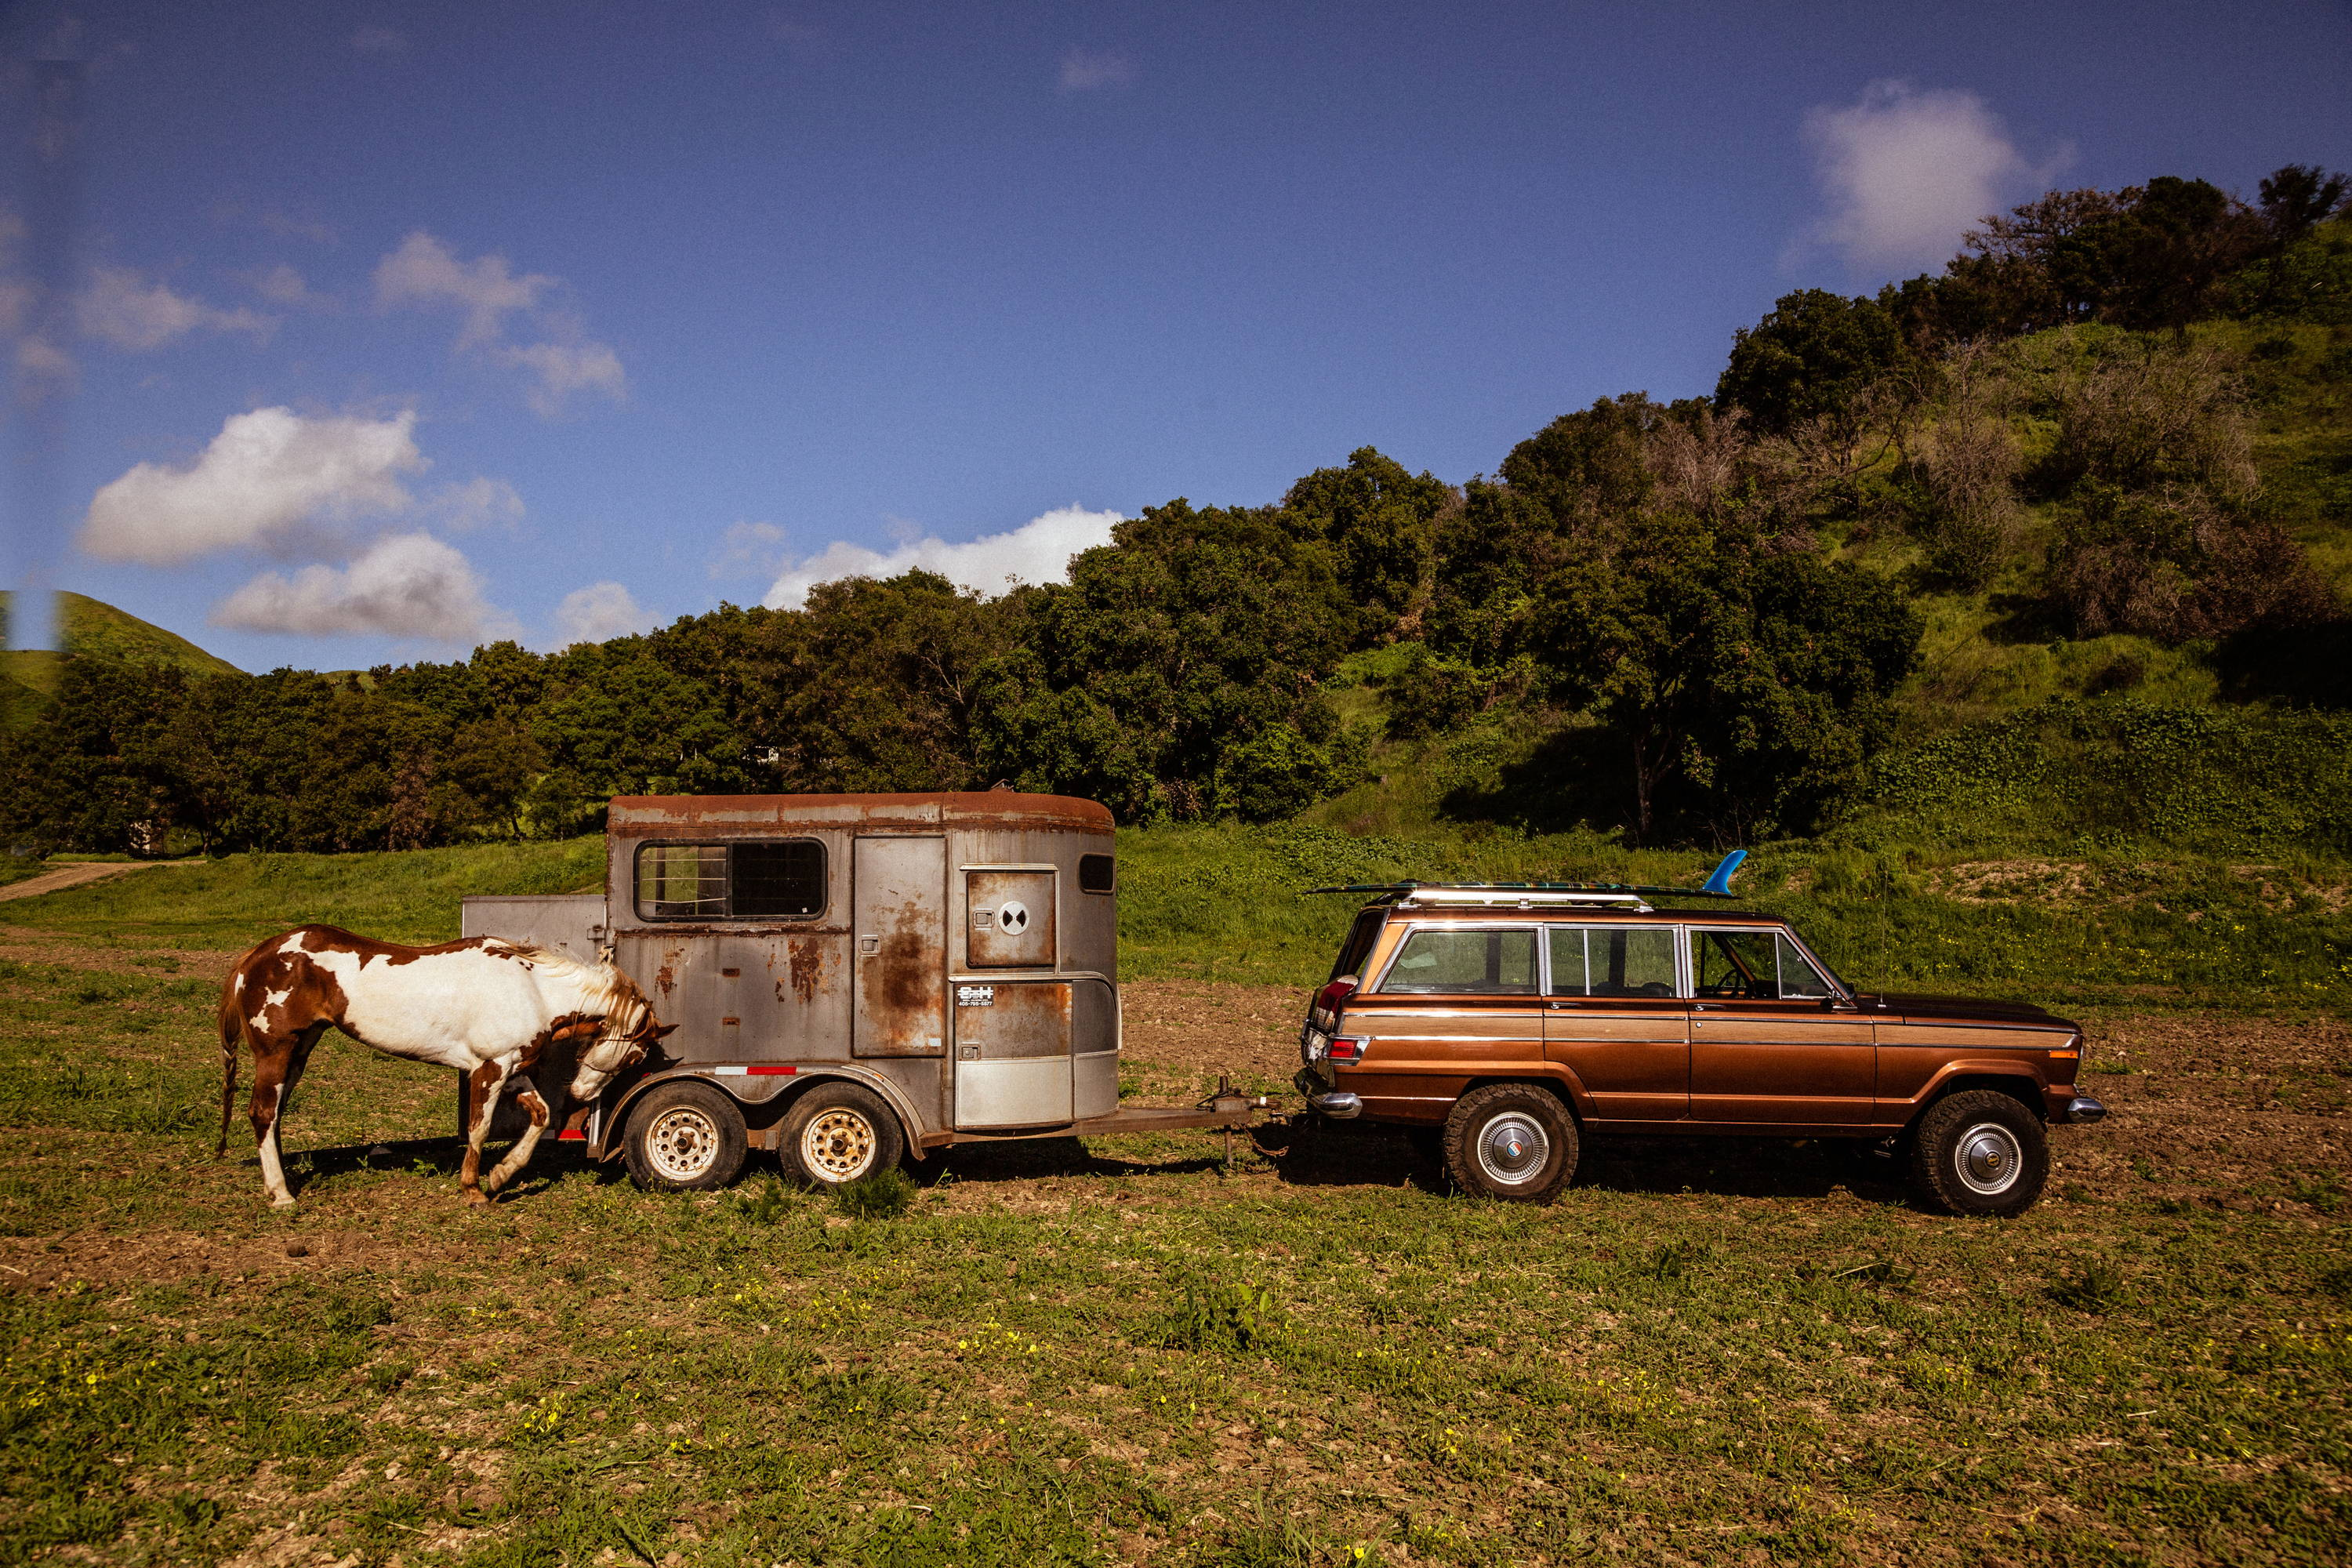 New Legend 4x4 x Iron & Resin 1978 Jeep Wagoneer with Vintage Horse Trailer In Ventura, CA